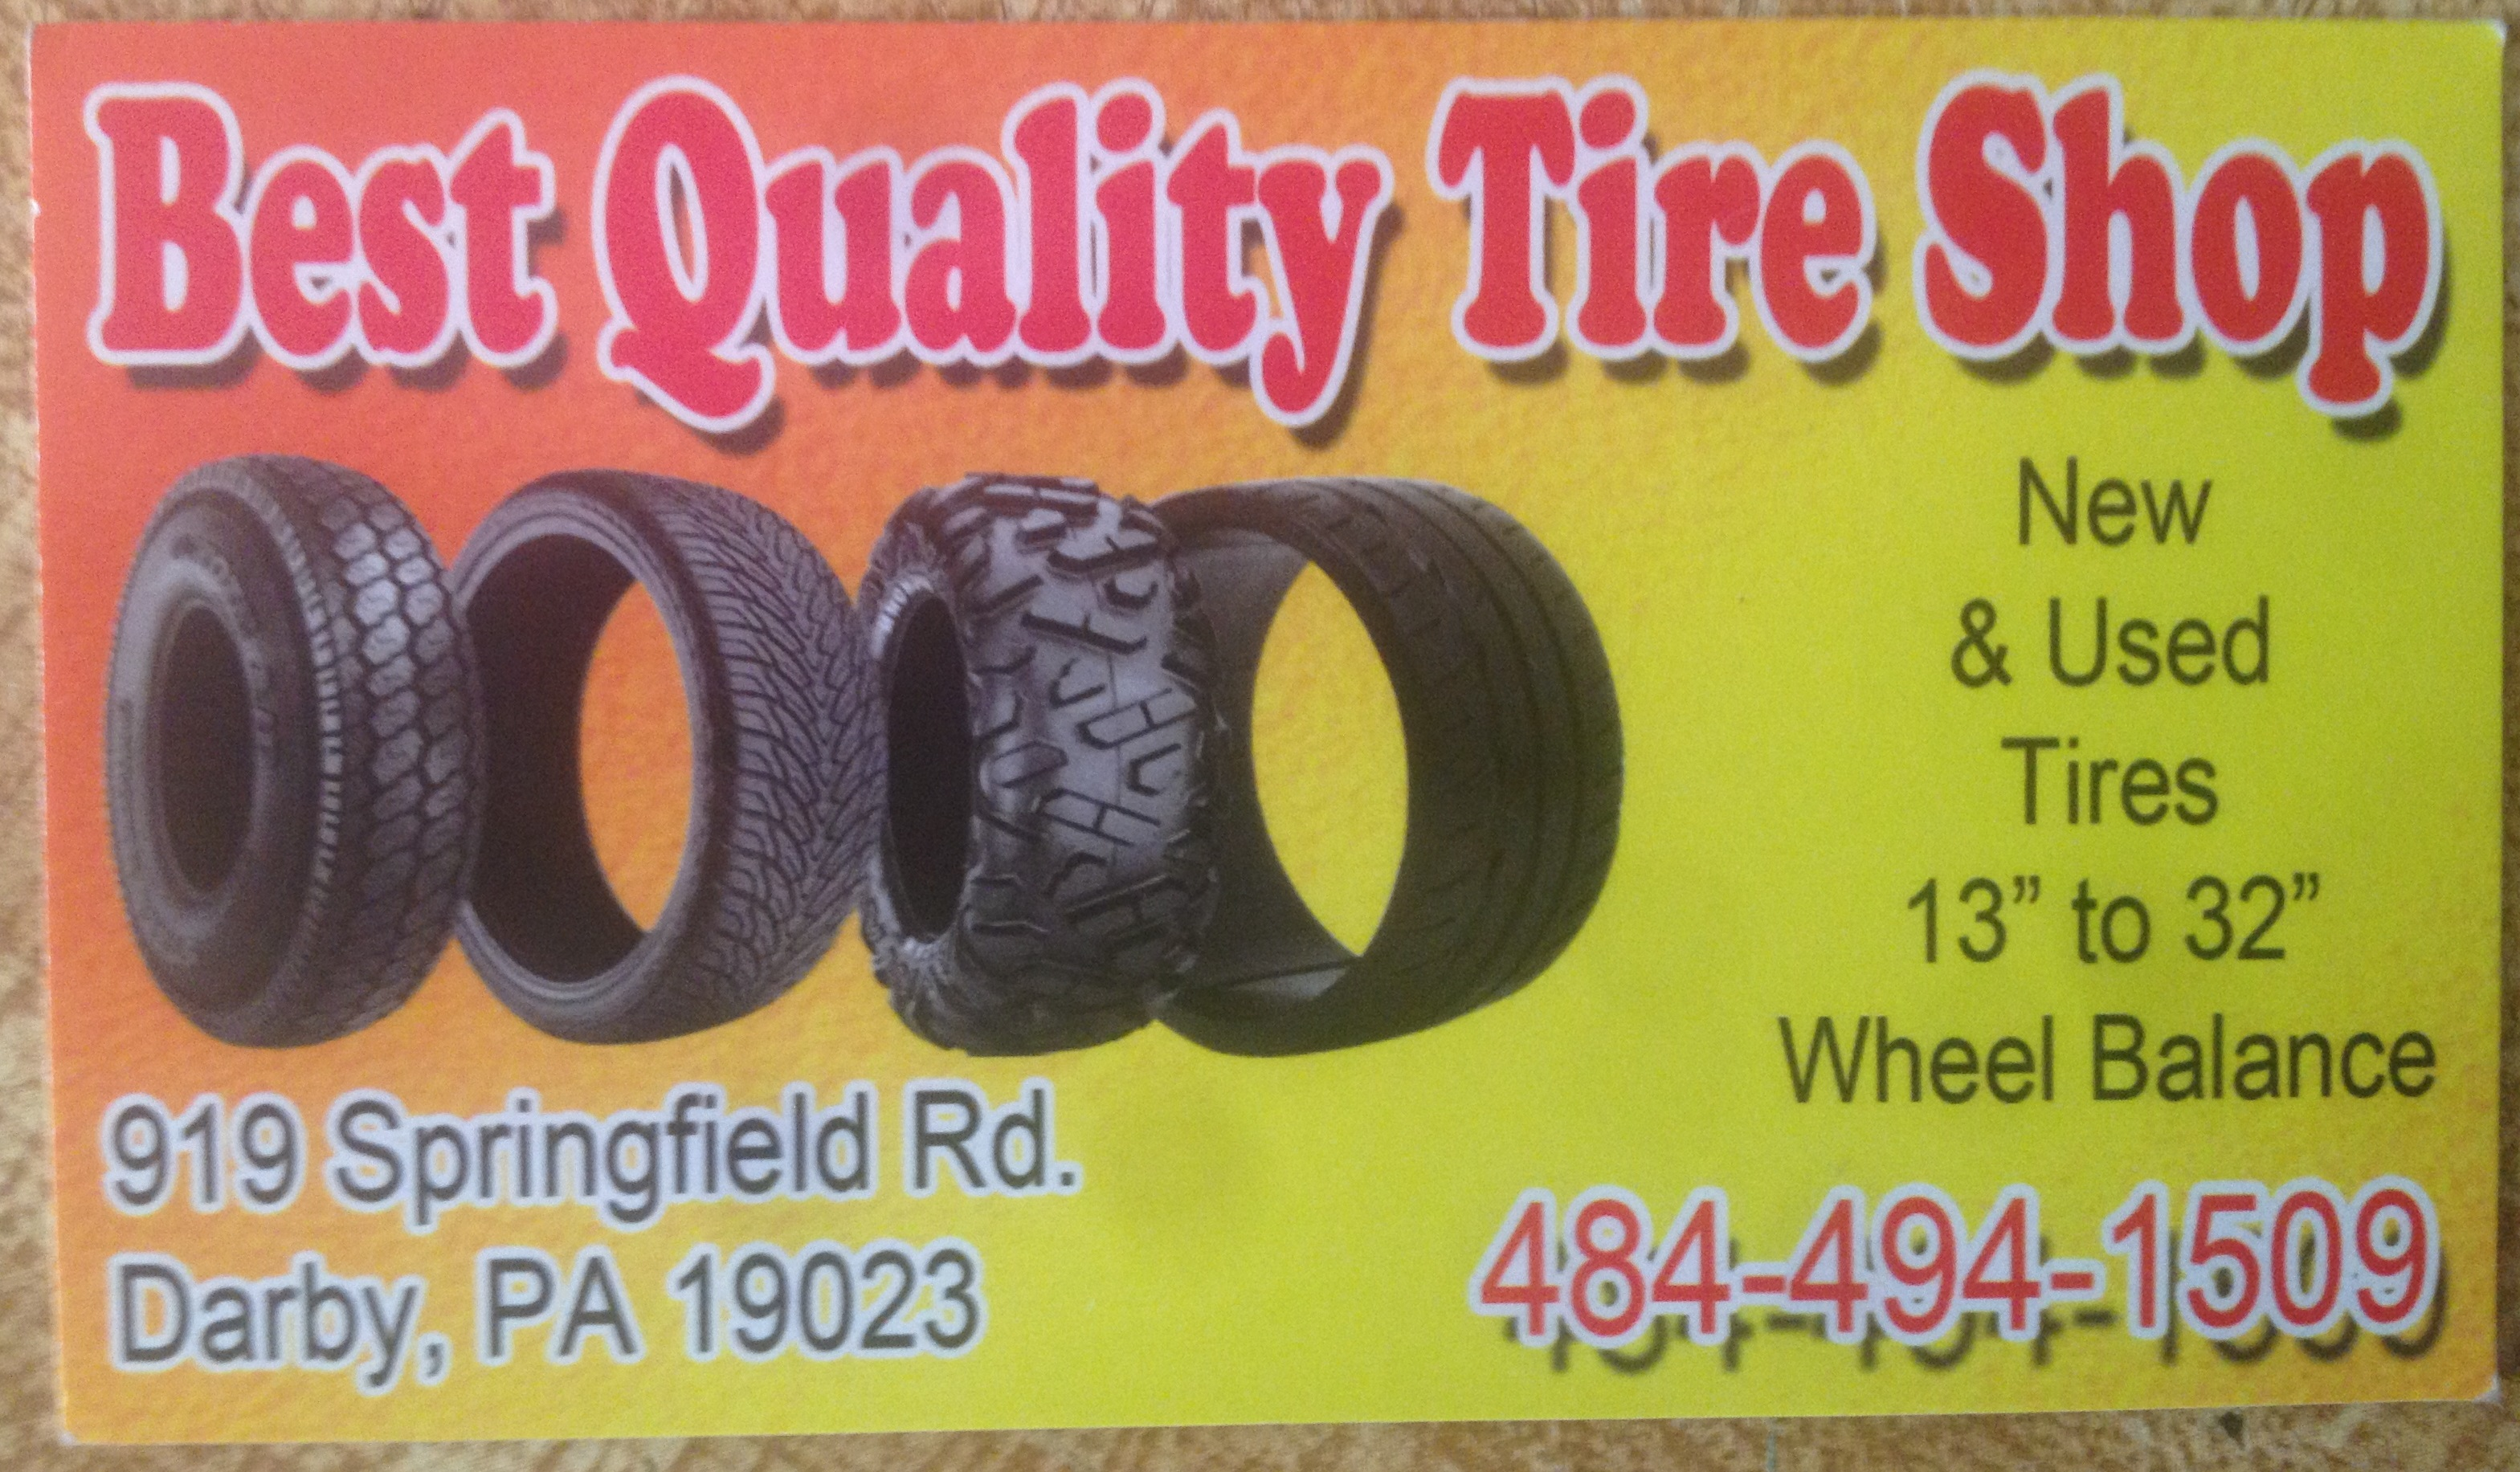 About us best quality tire shop for Tire shop business cards